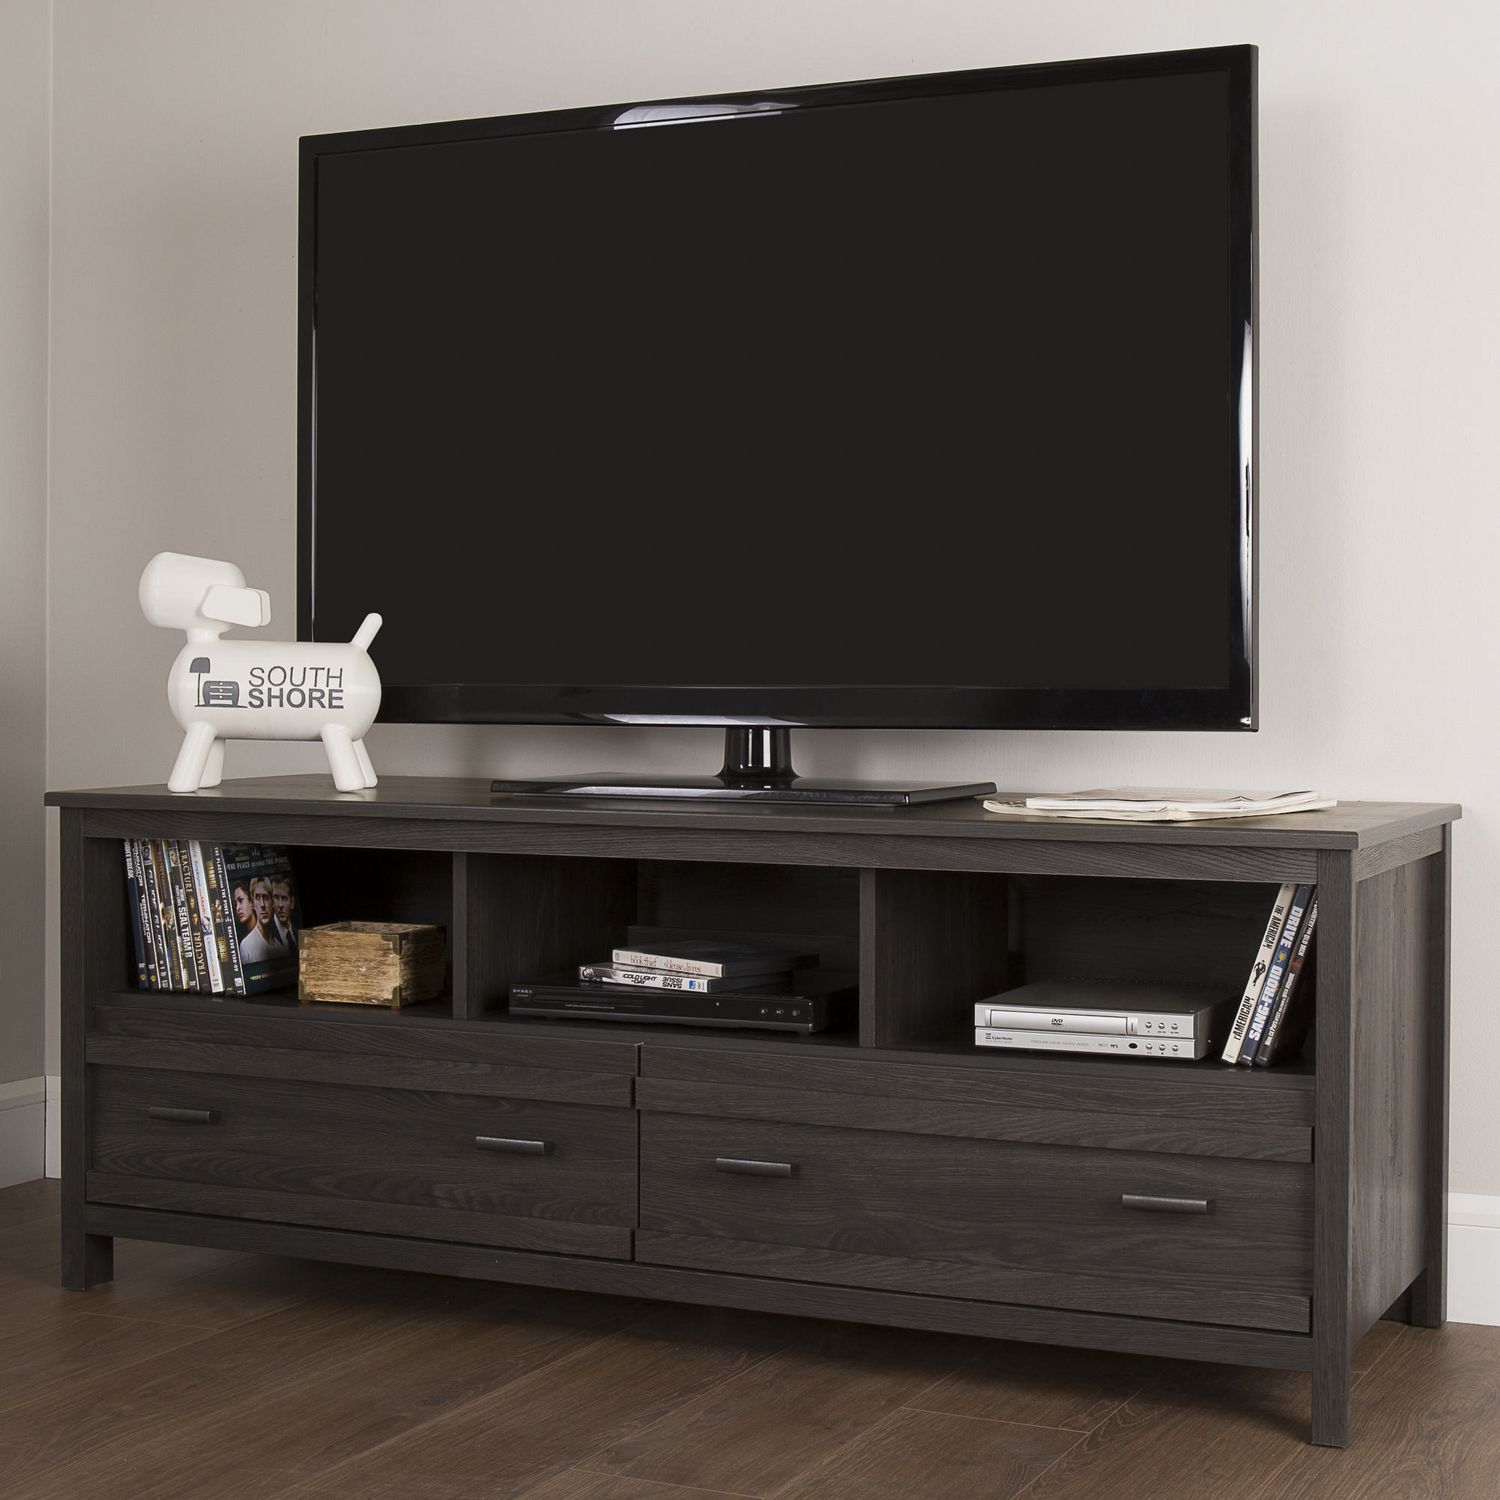 south shore exhibit tv stand for tv's up to  inches  walmartca -